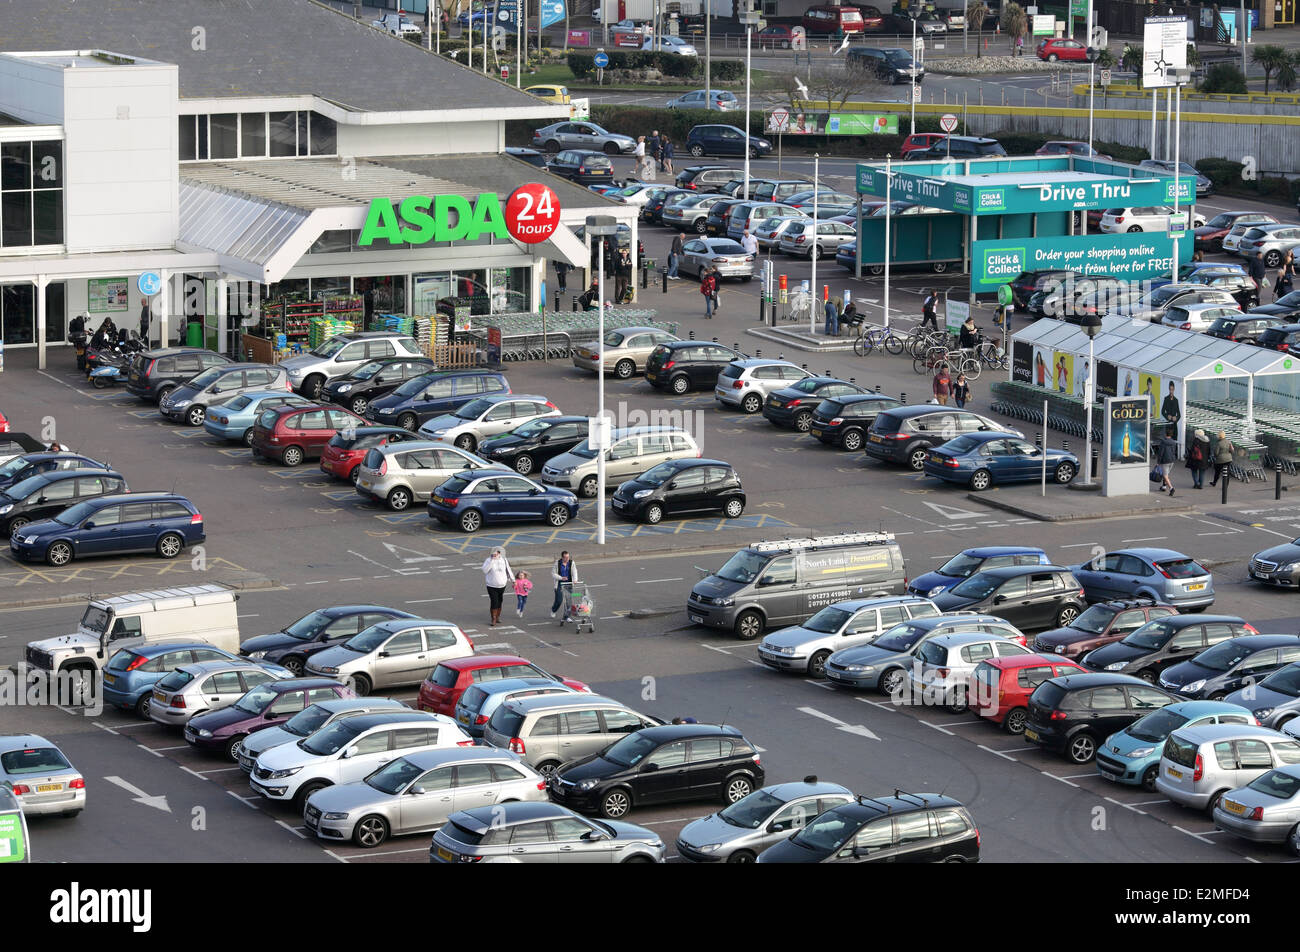 """The entrance to Asda supermarket, Brighton Marina. Drive Thru """"Click and Collect"""" area to the right. - Stock Image"""